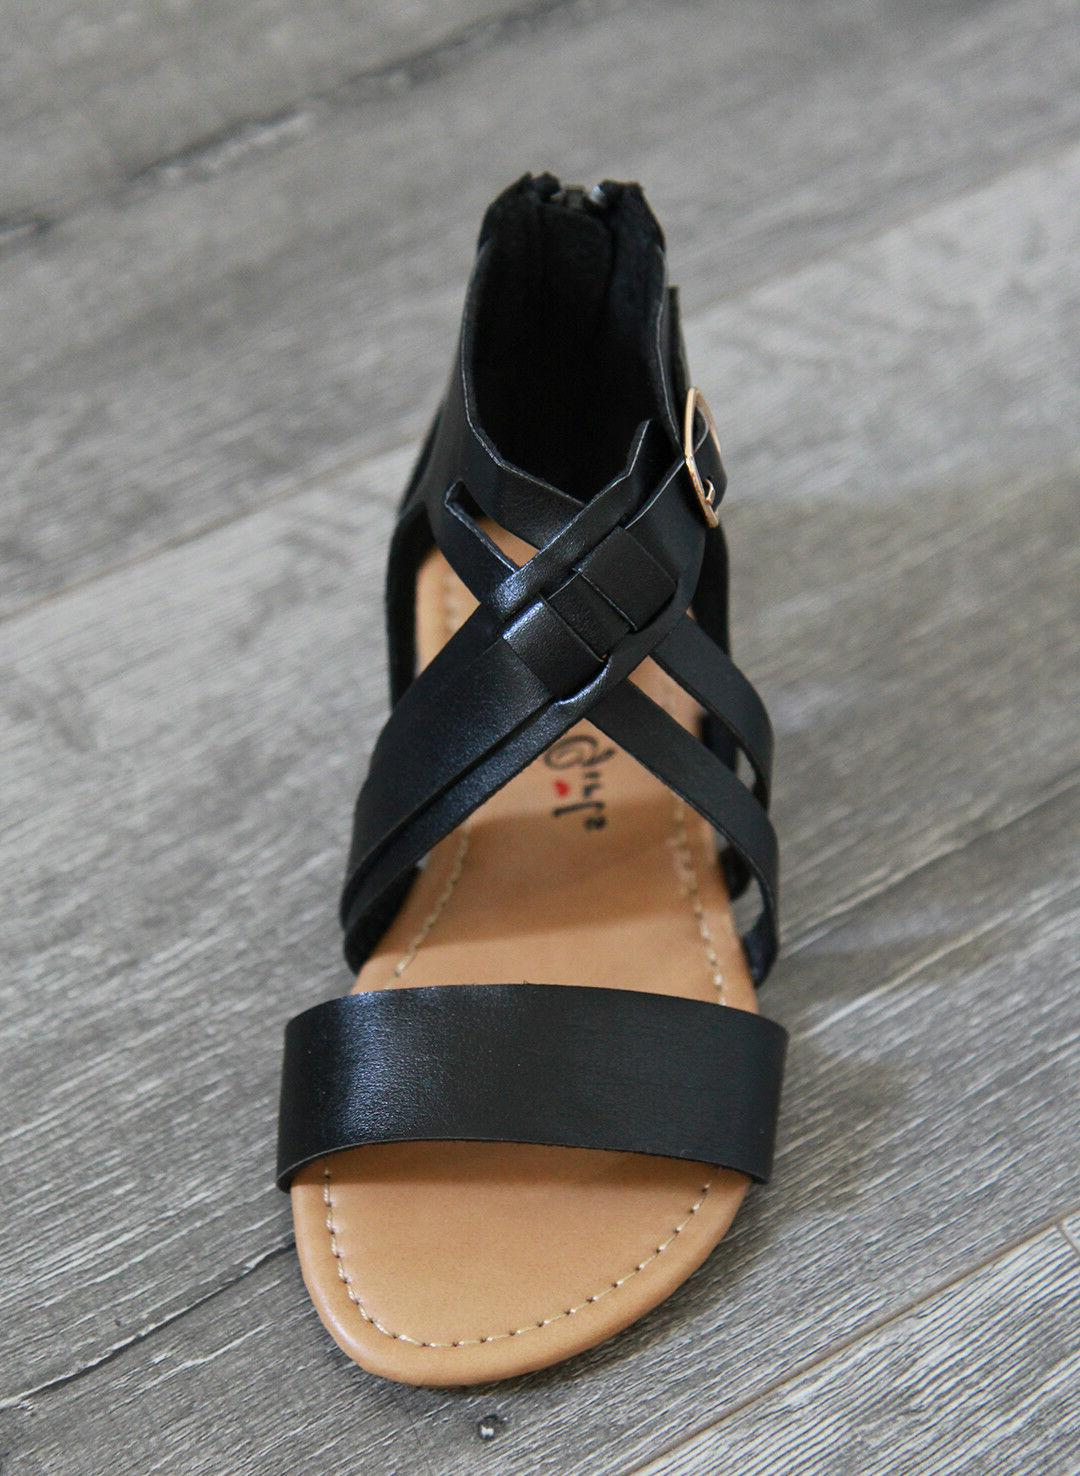 New Toddler Cross Sandals size